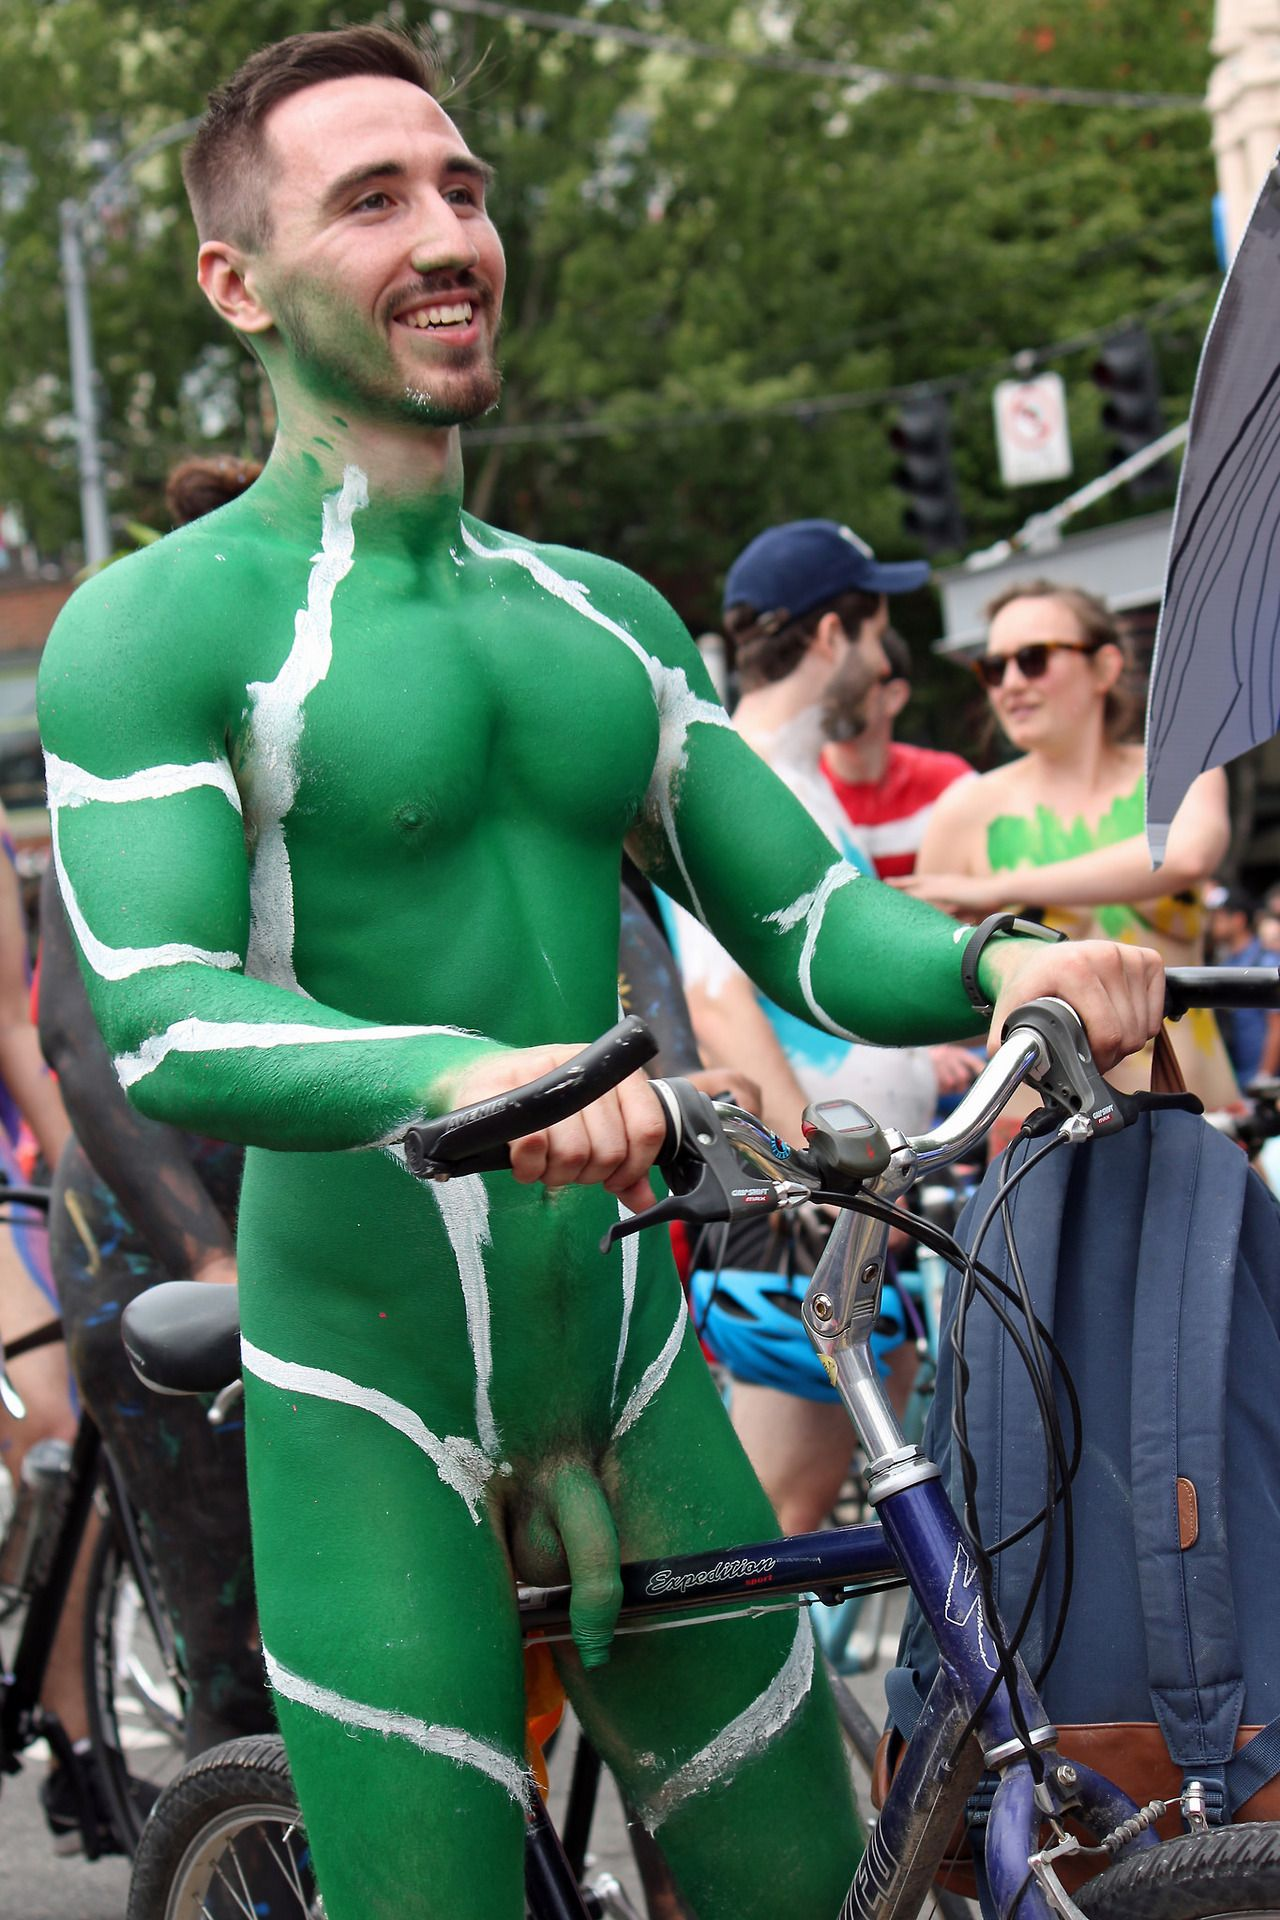 When Is The Next Naked Bike Ride - Active Naturists -9652